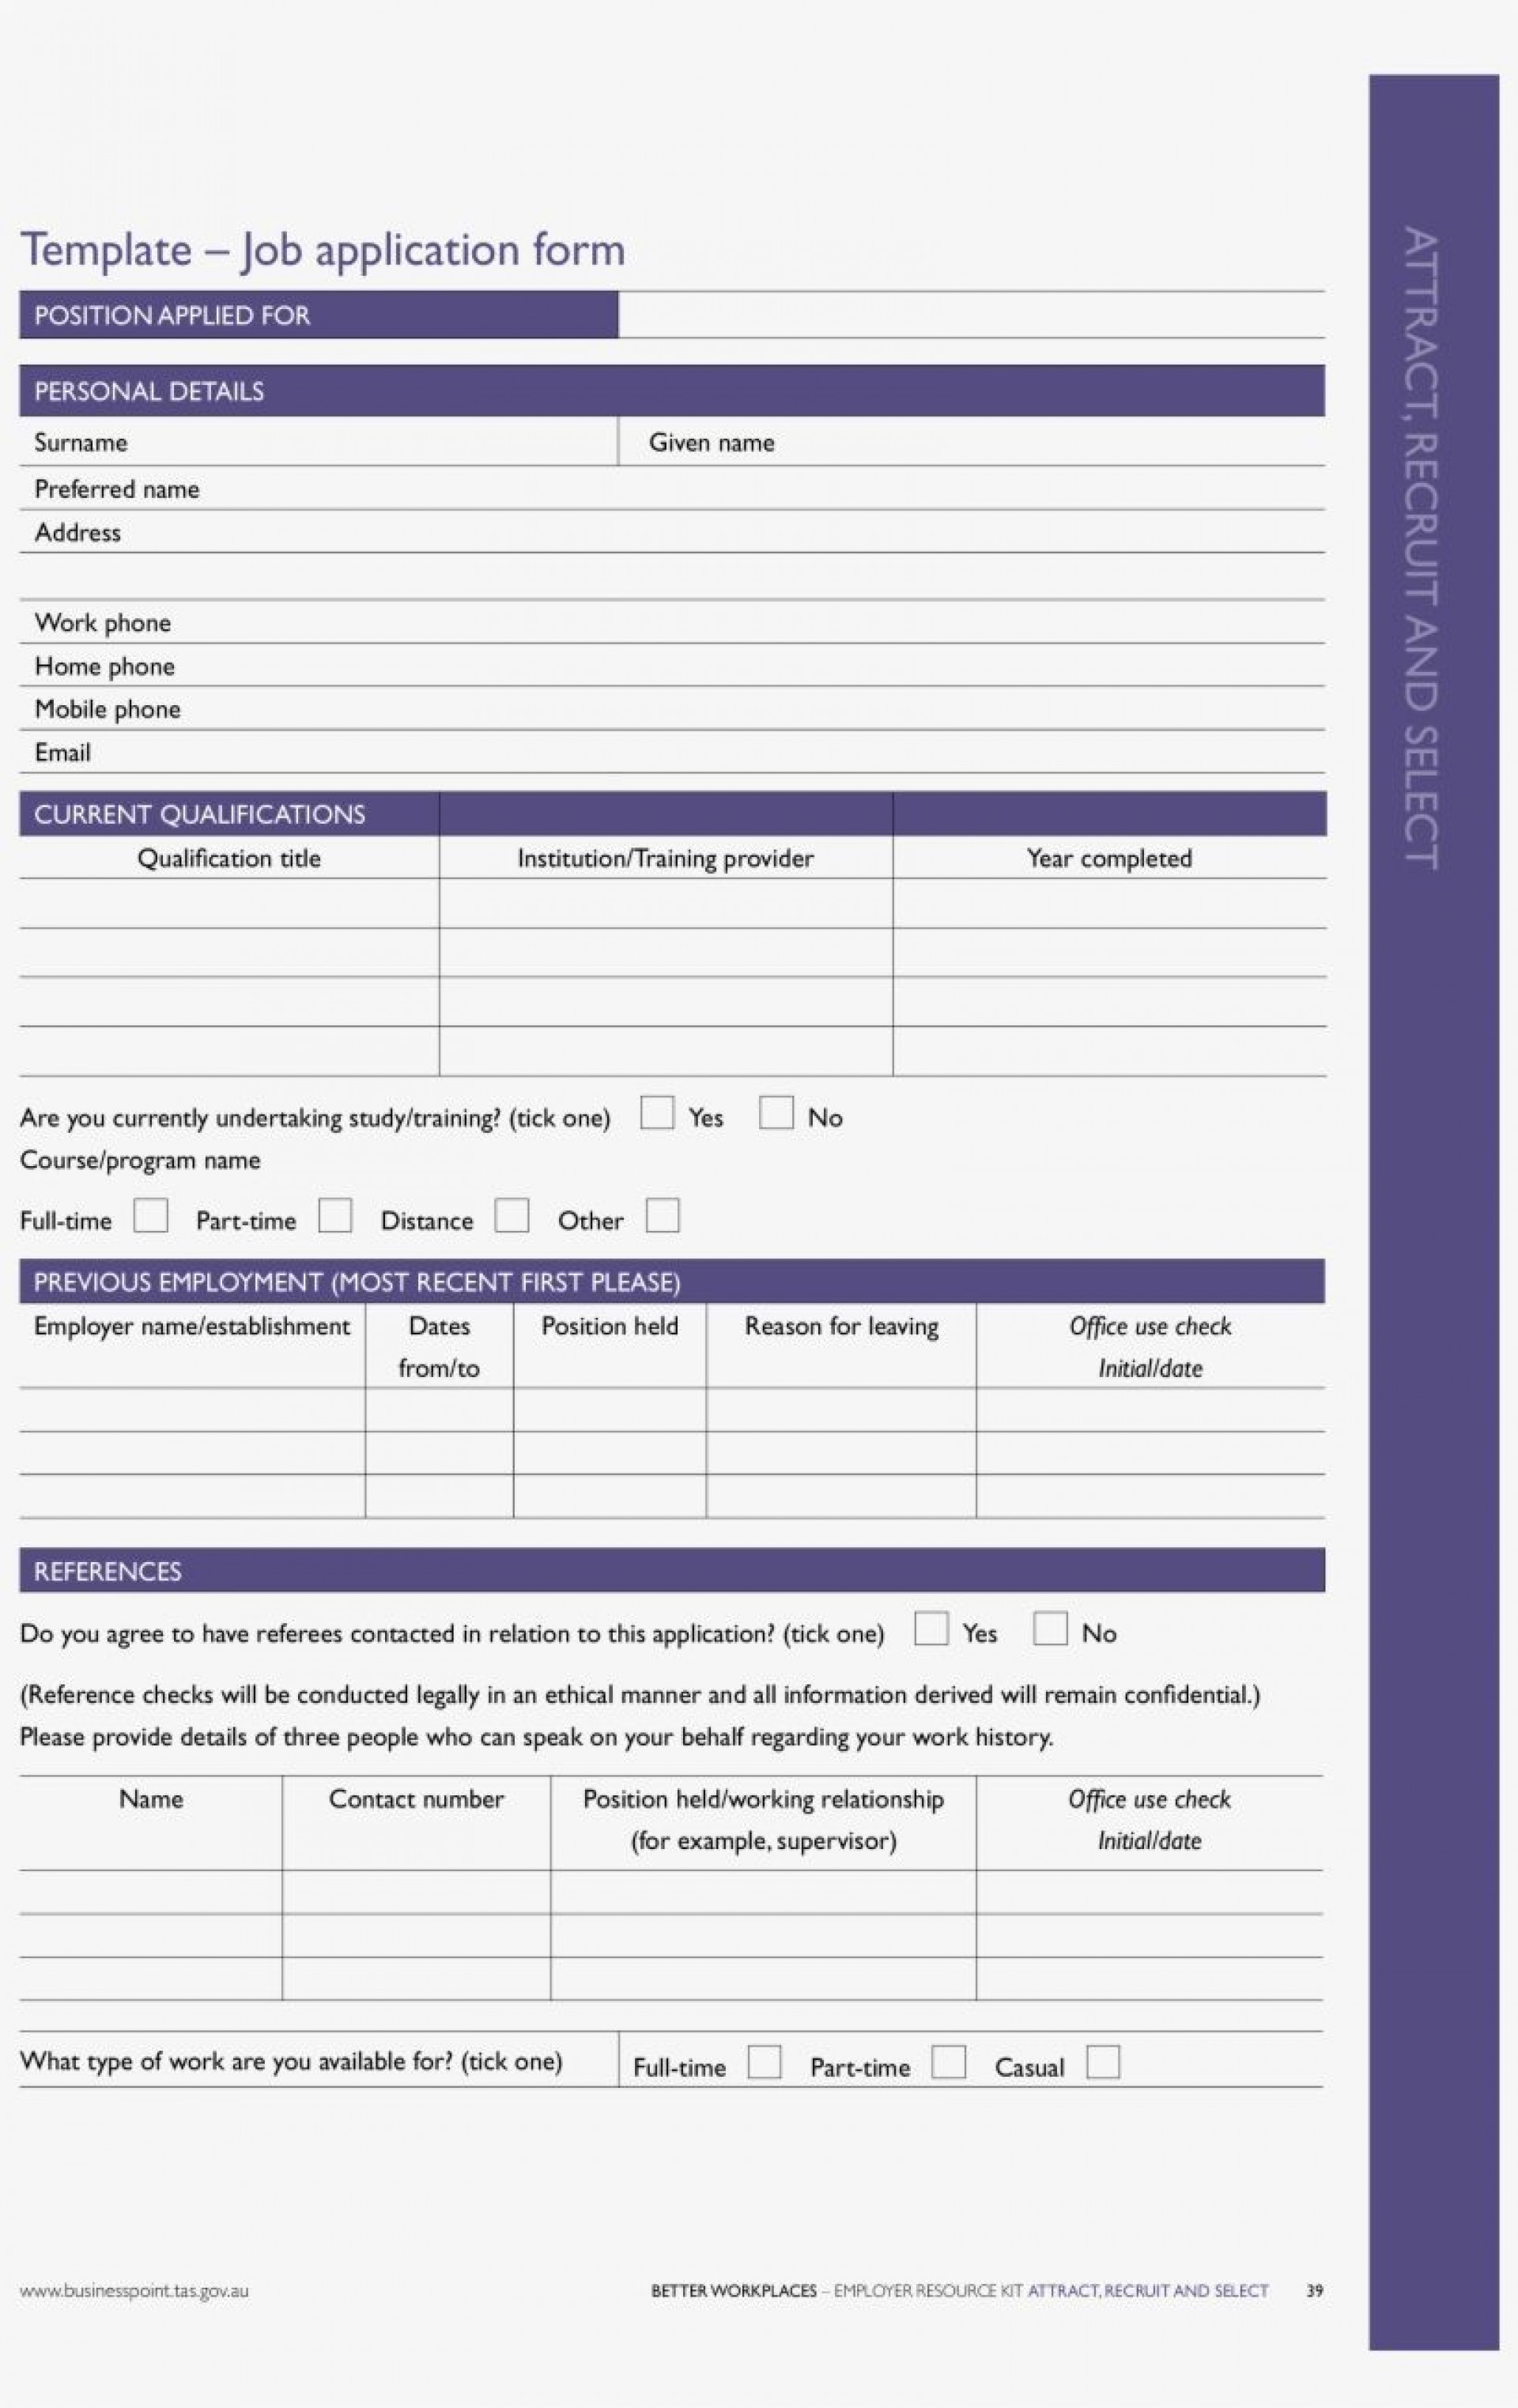 002 Stirring Free Employment Application Template Word Image 1920